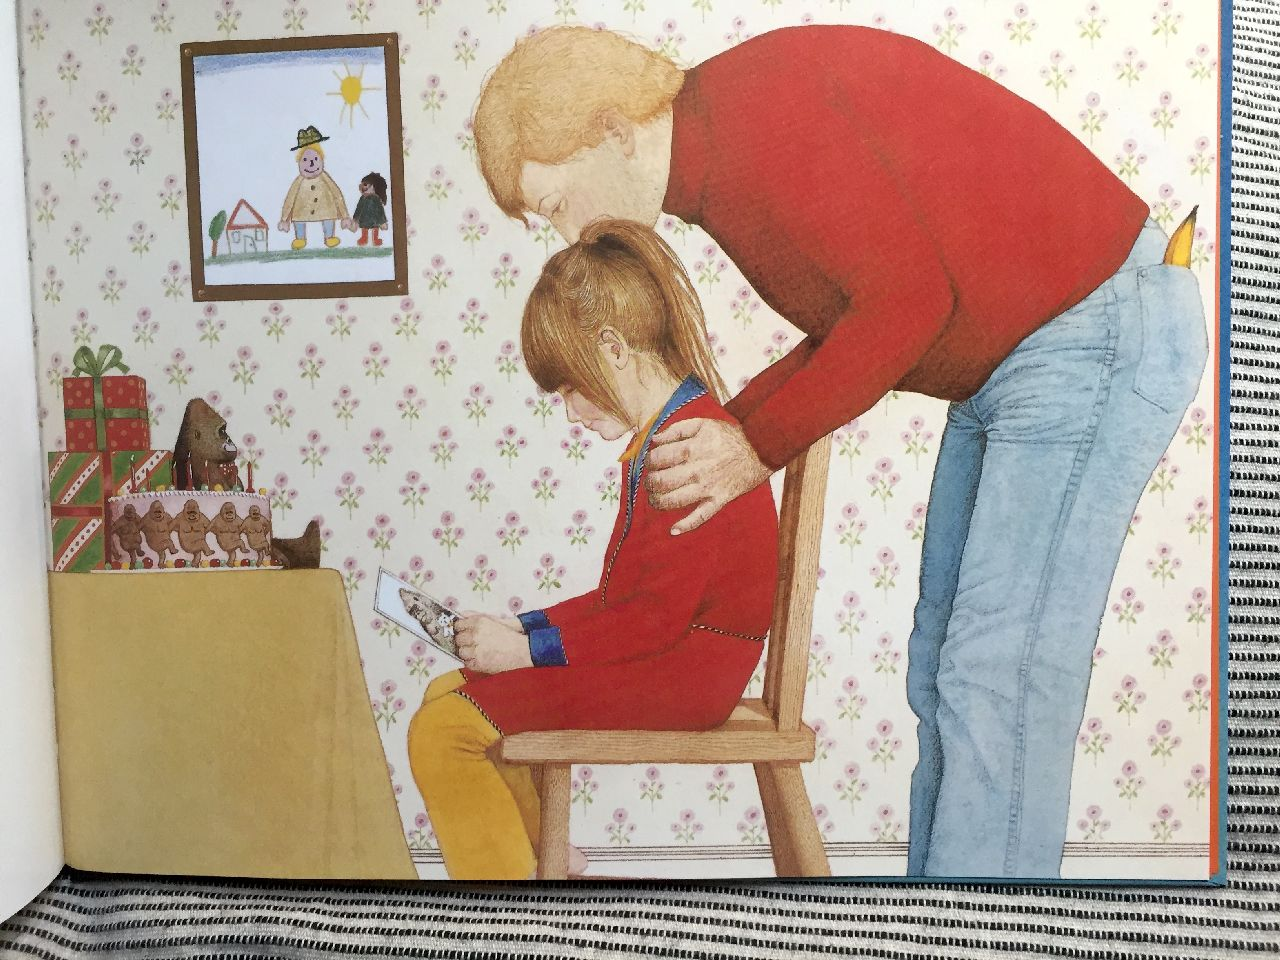 Anthony Browne, Gorilla, Orecchio acerbo